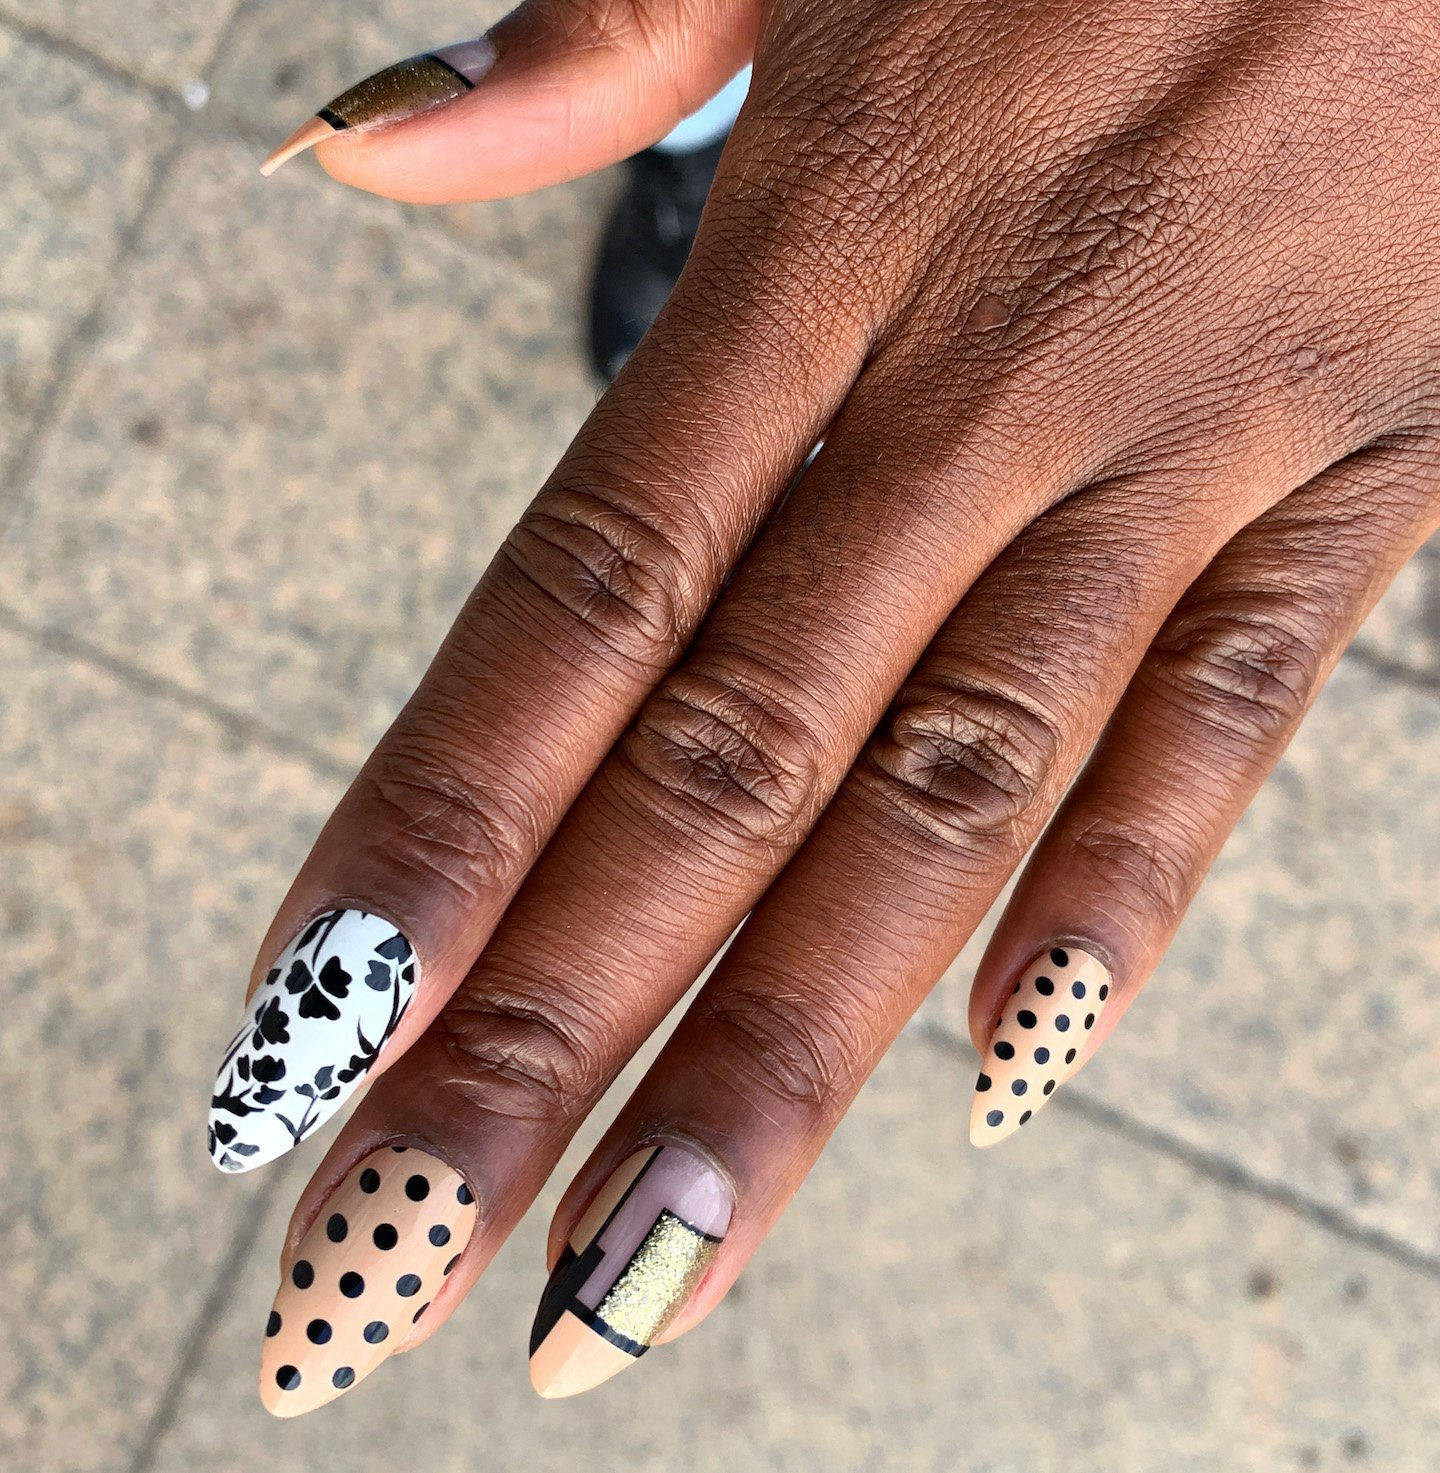 Gold Finger Posh Queen Press On Nails